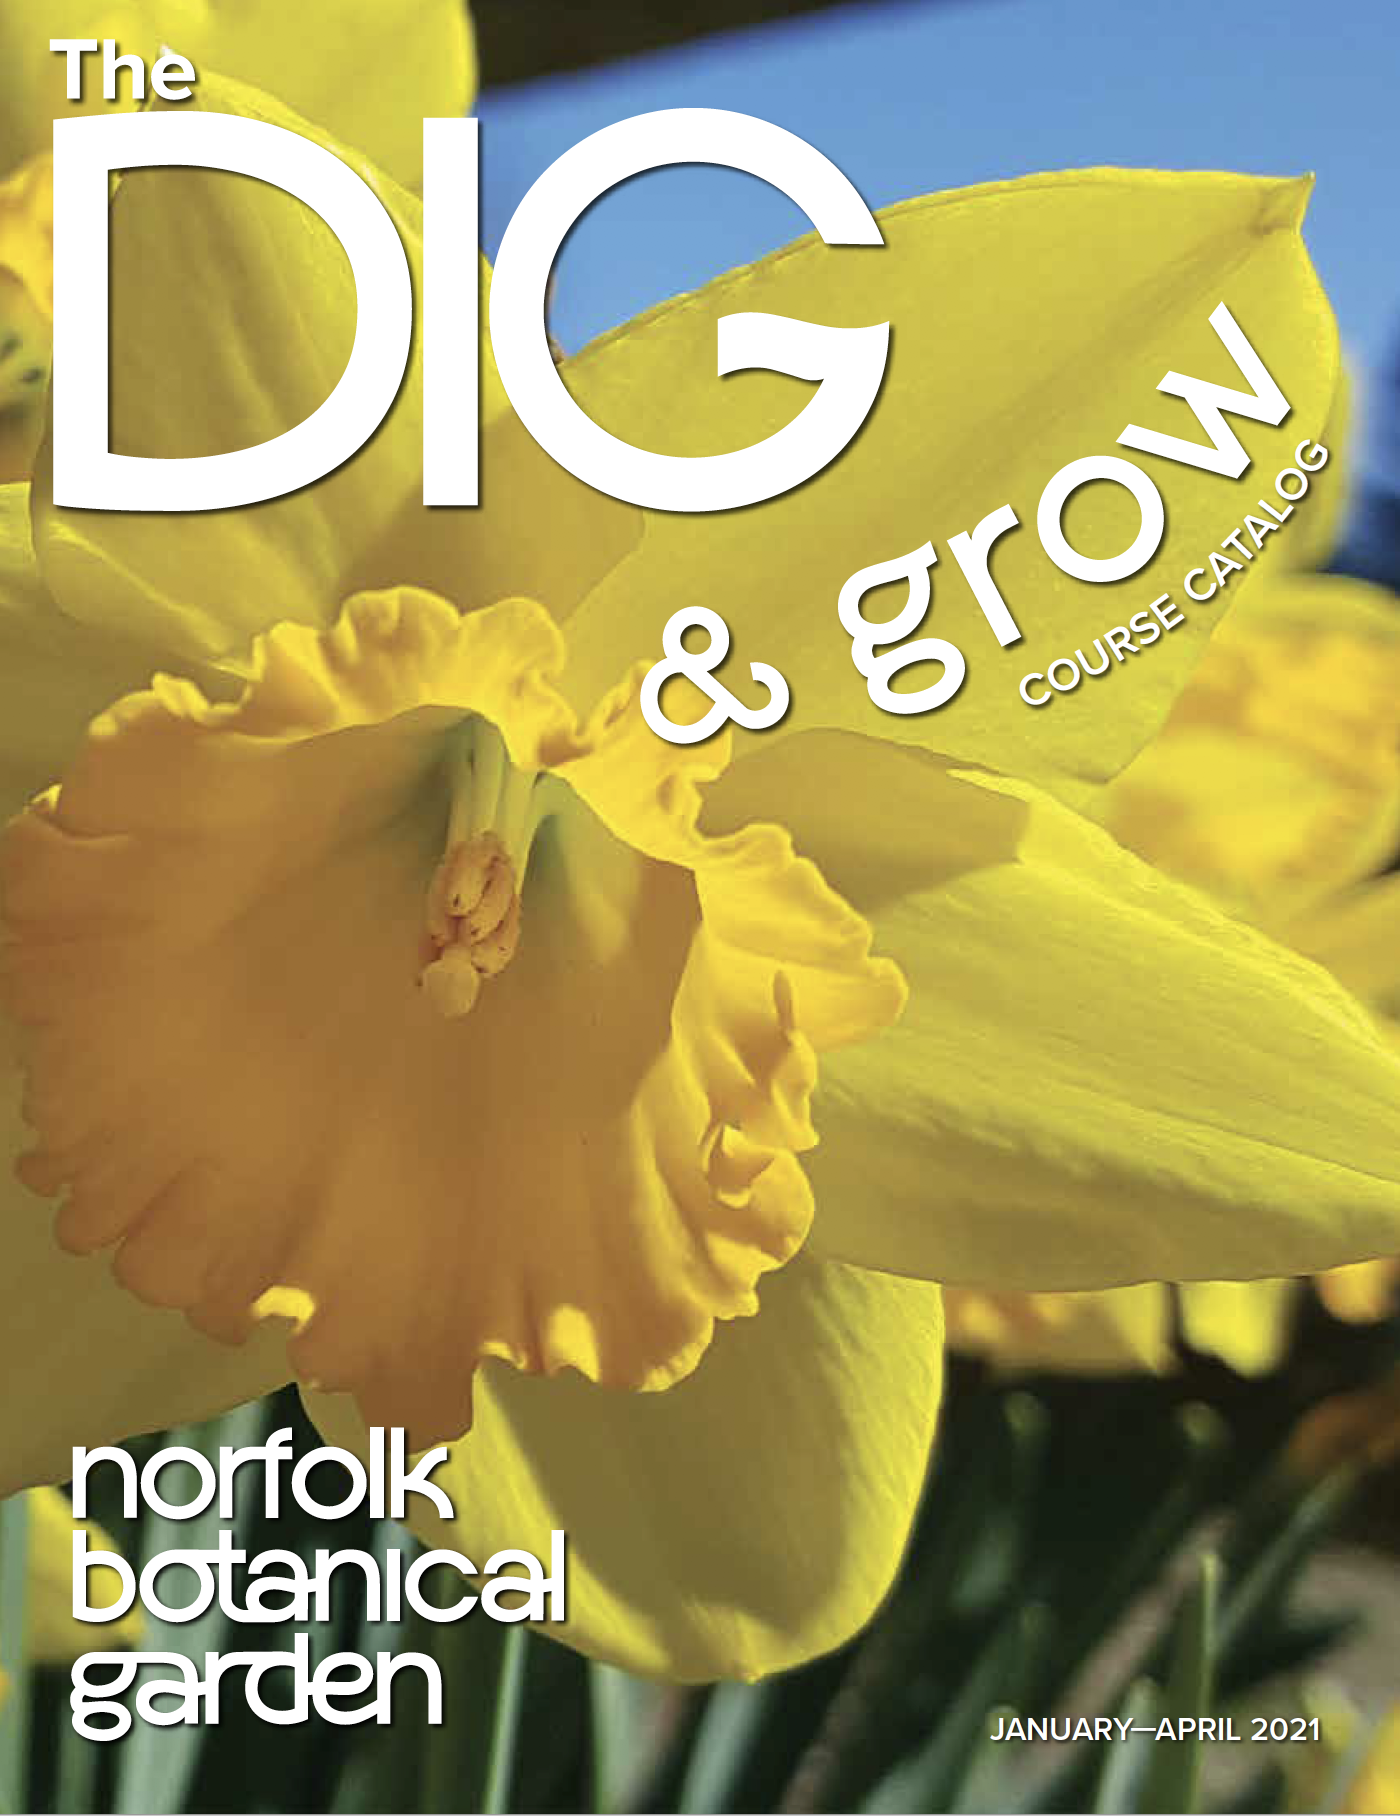 Image of the front cover of NBG newsletter DIG for the months of January through April 2021.